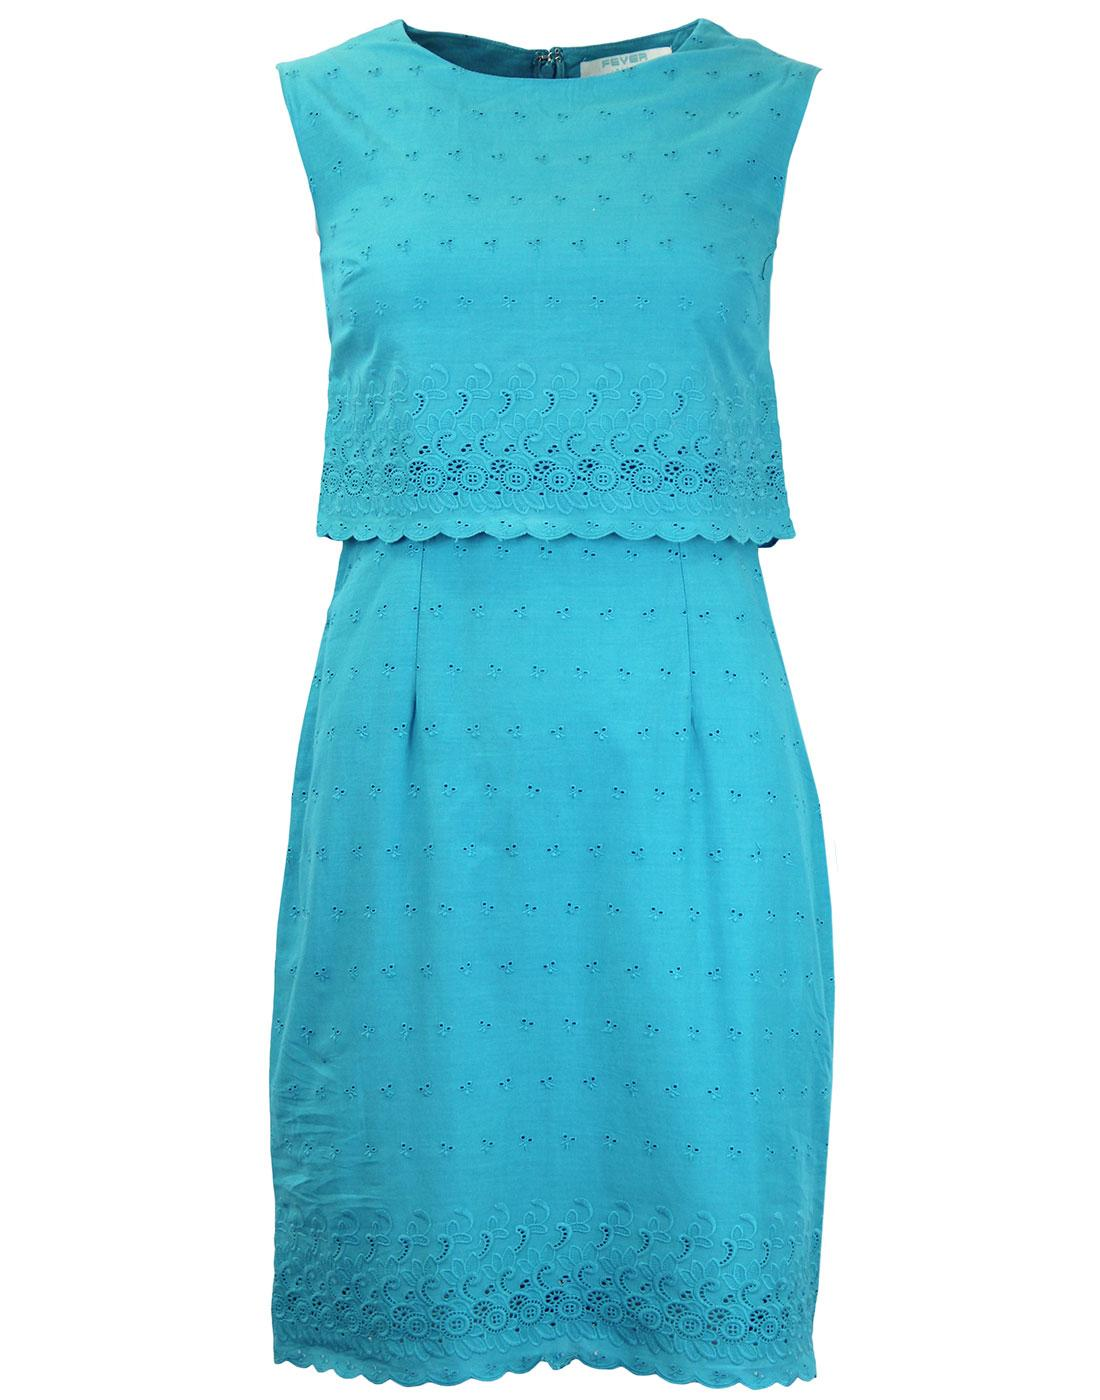 Pacific FEVER 60s Mod Double Layered Shift Dress